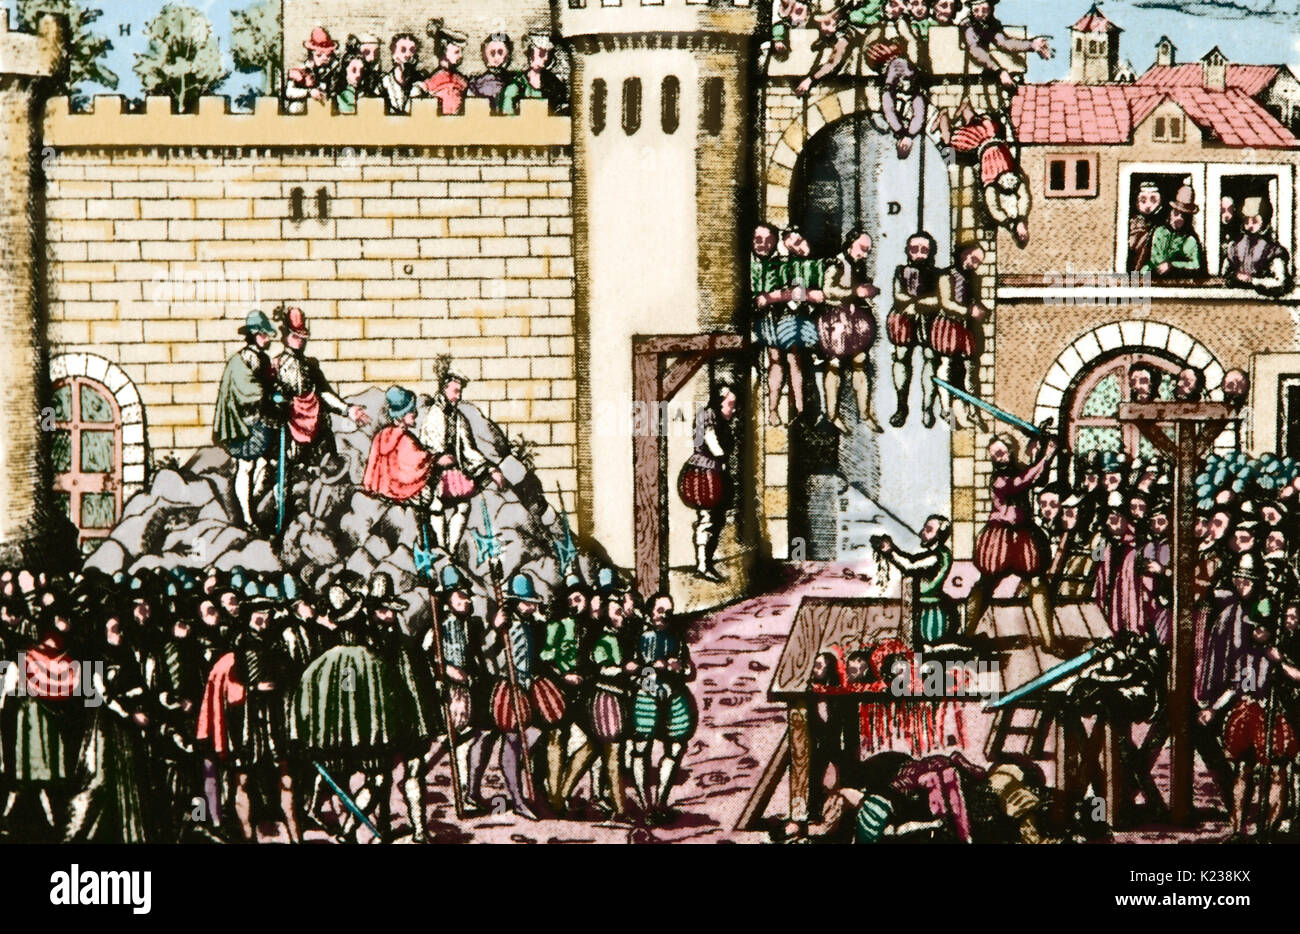 Execution of members of Amboise conspiracy. Abortive Huguenot conspiracy against Catholic House of Guise, 25 March 1560. Engraving by Hogenberg, late 16th - early 17th century. Colored. - Stock Image